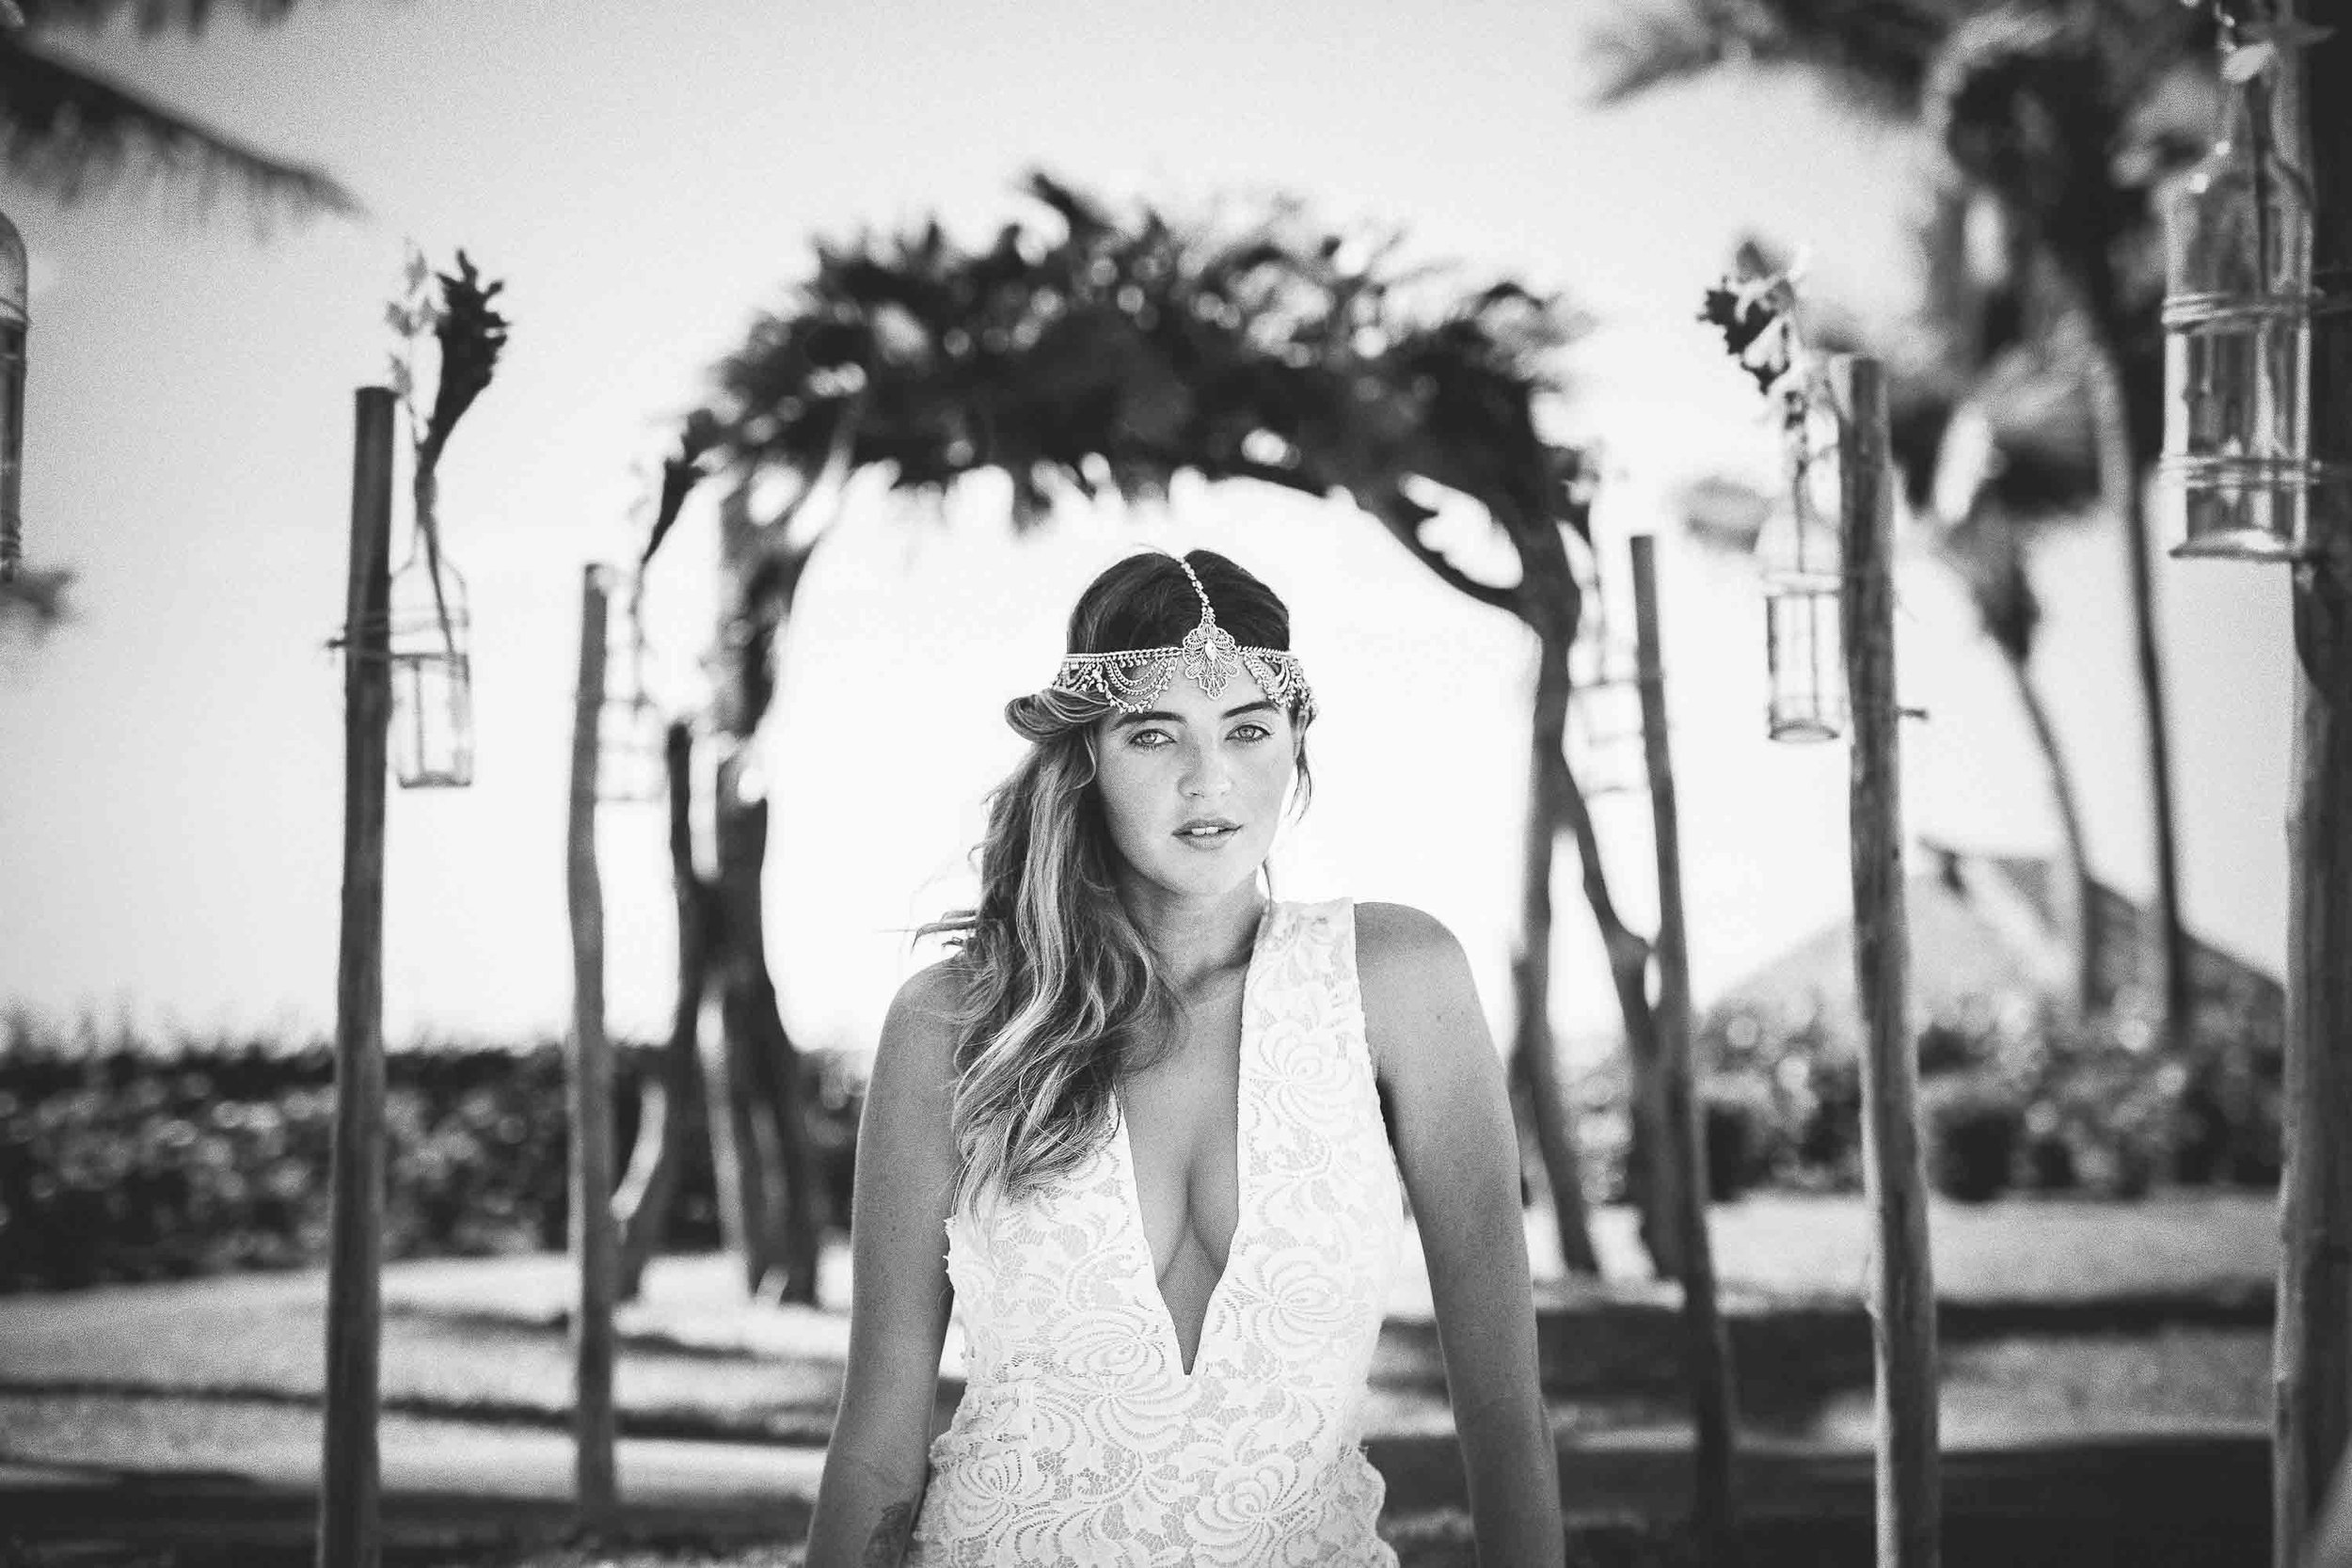 model with silver headpiece at a outdoor wedding setup